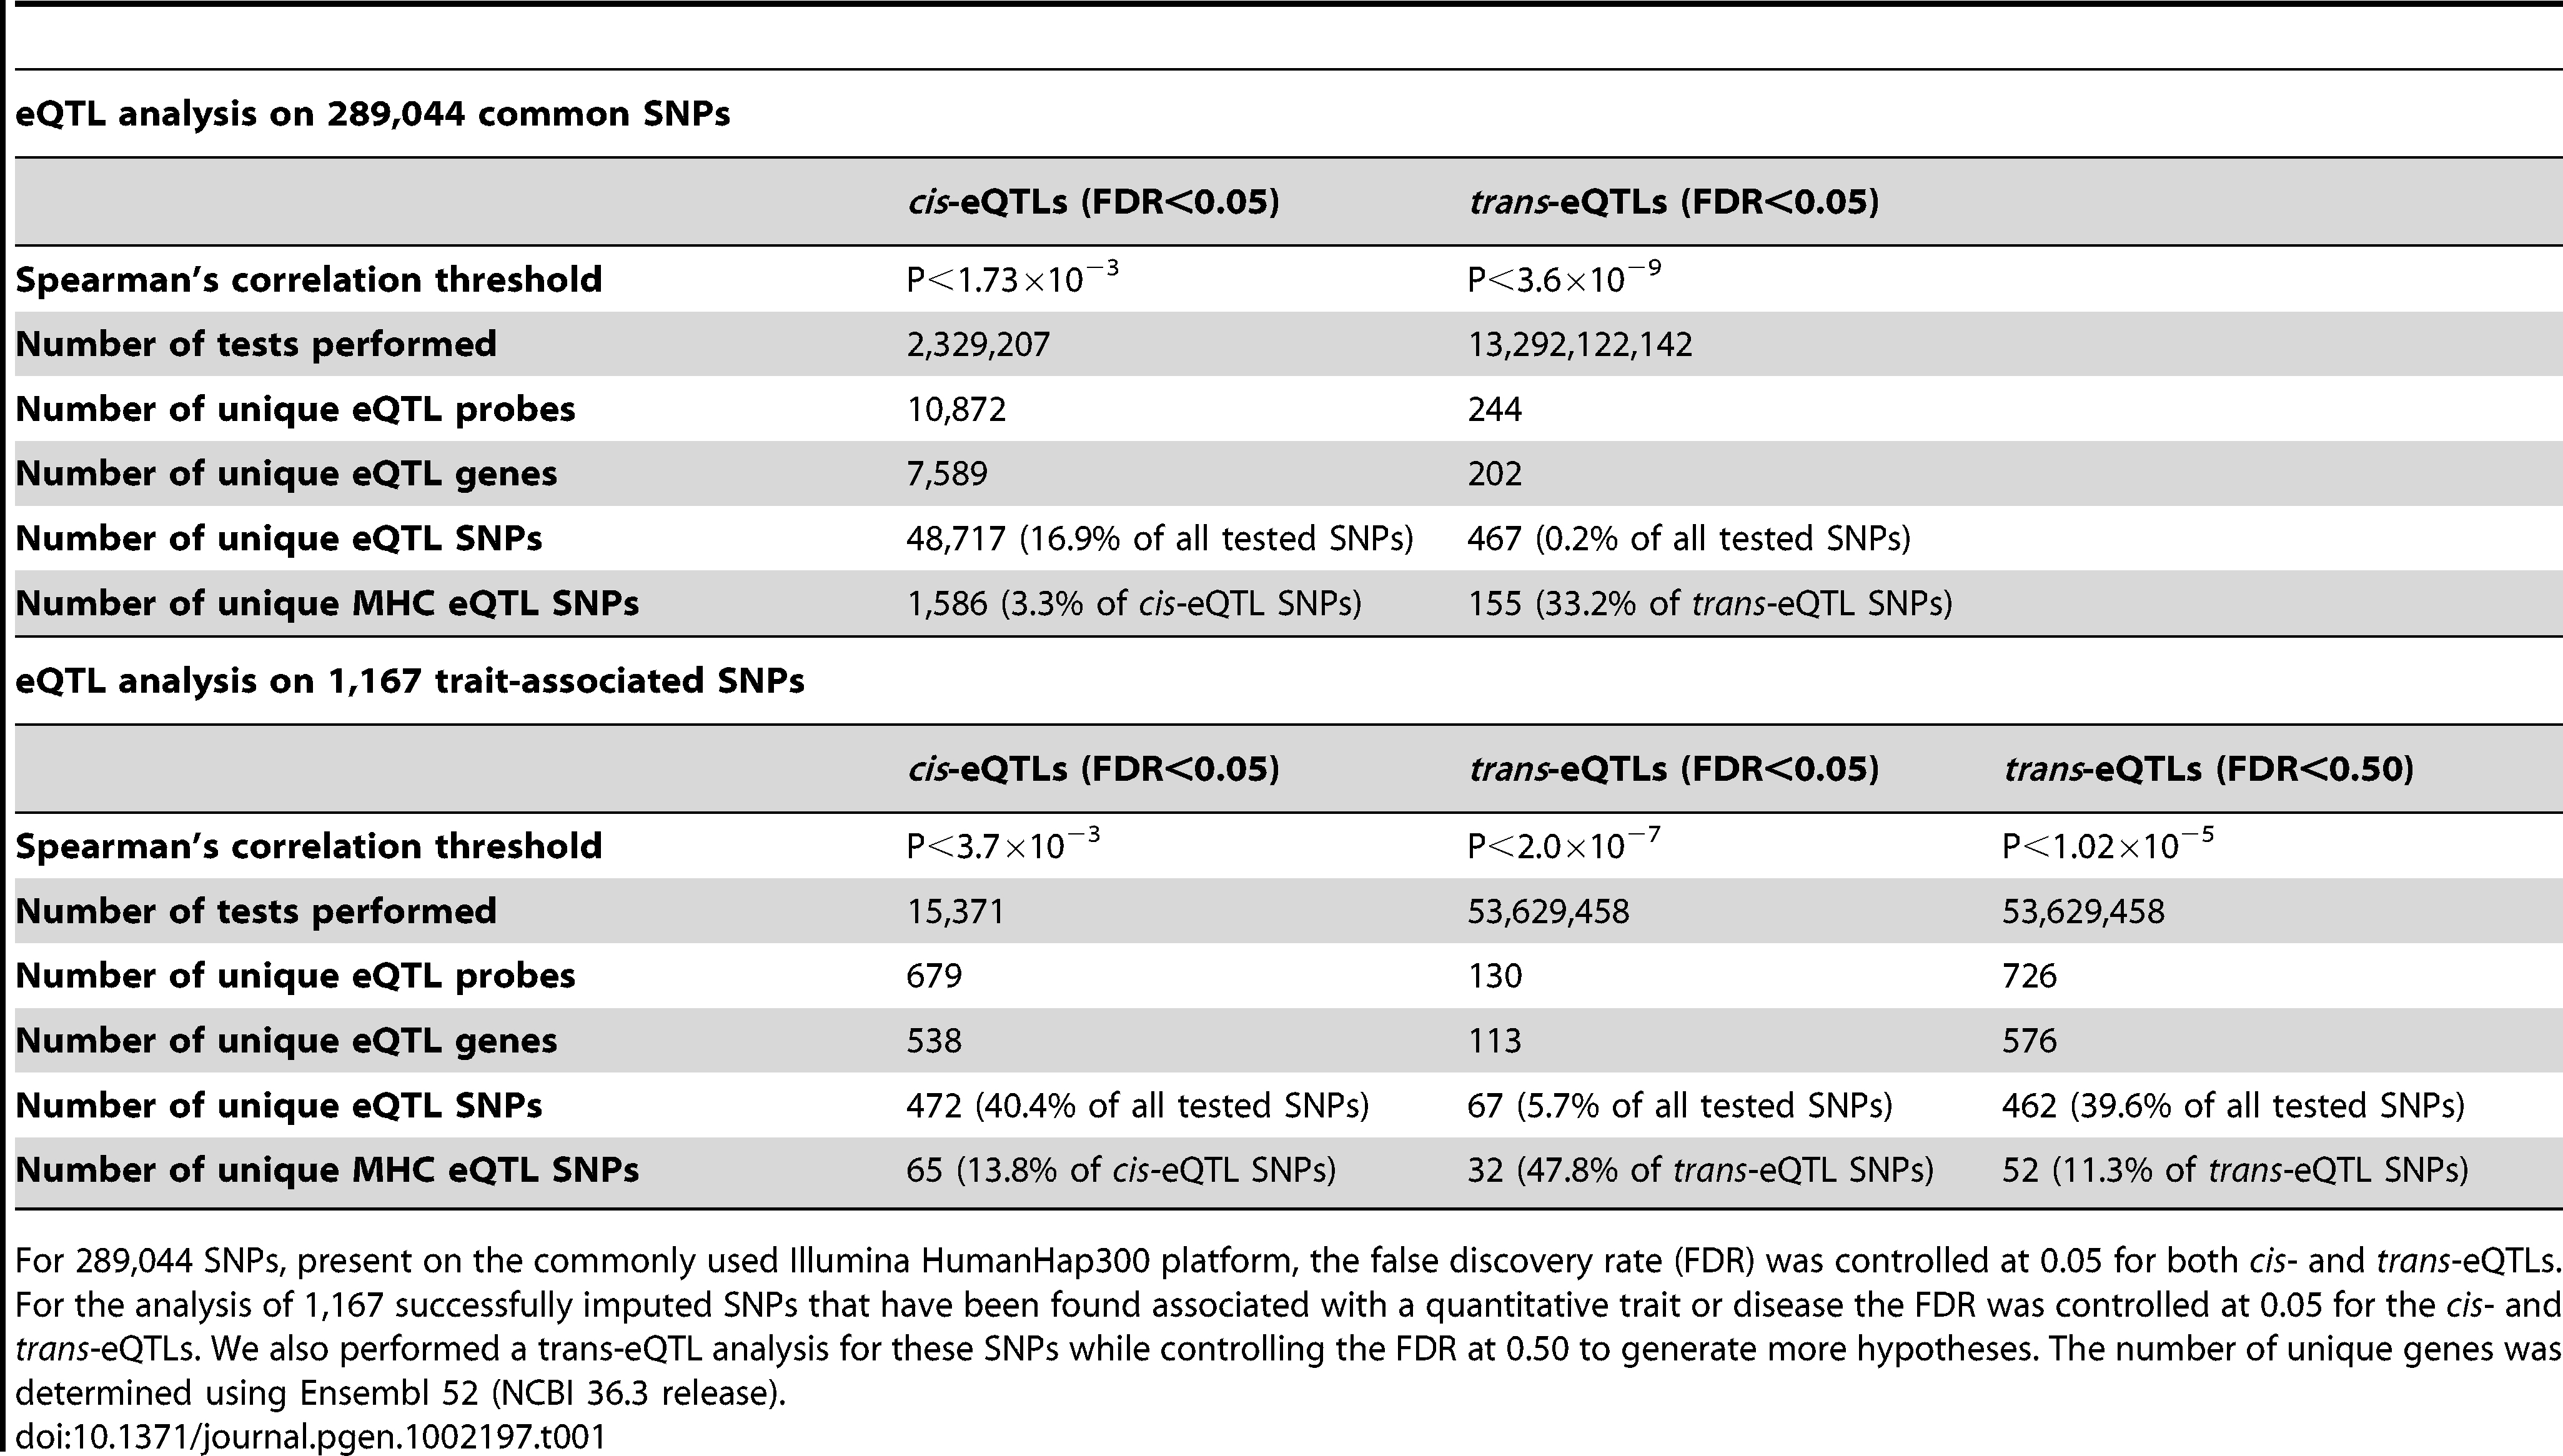 Detected eQTLs in 1,469 genetical genomics samples for 289,044 common SNPs and for 1,167 trait-associated SNPs.